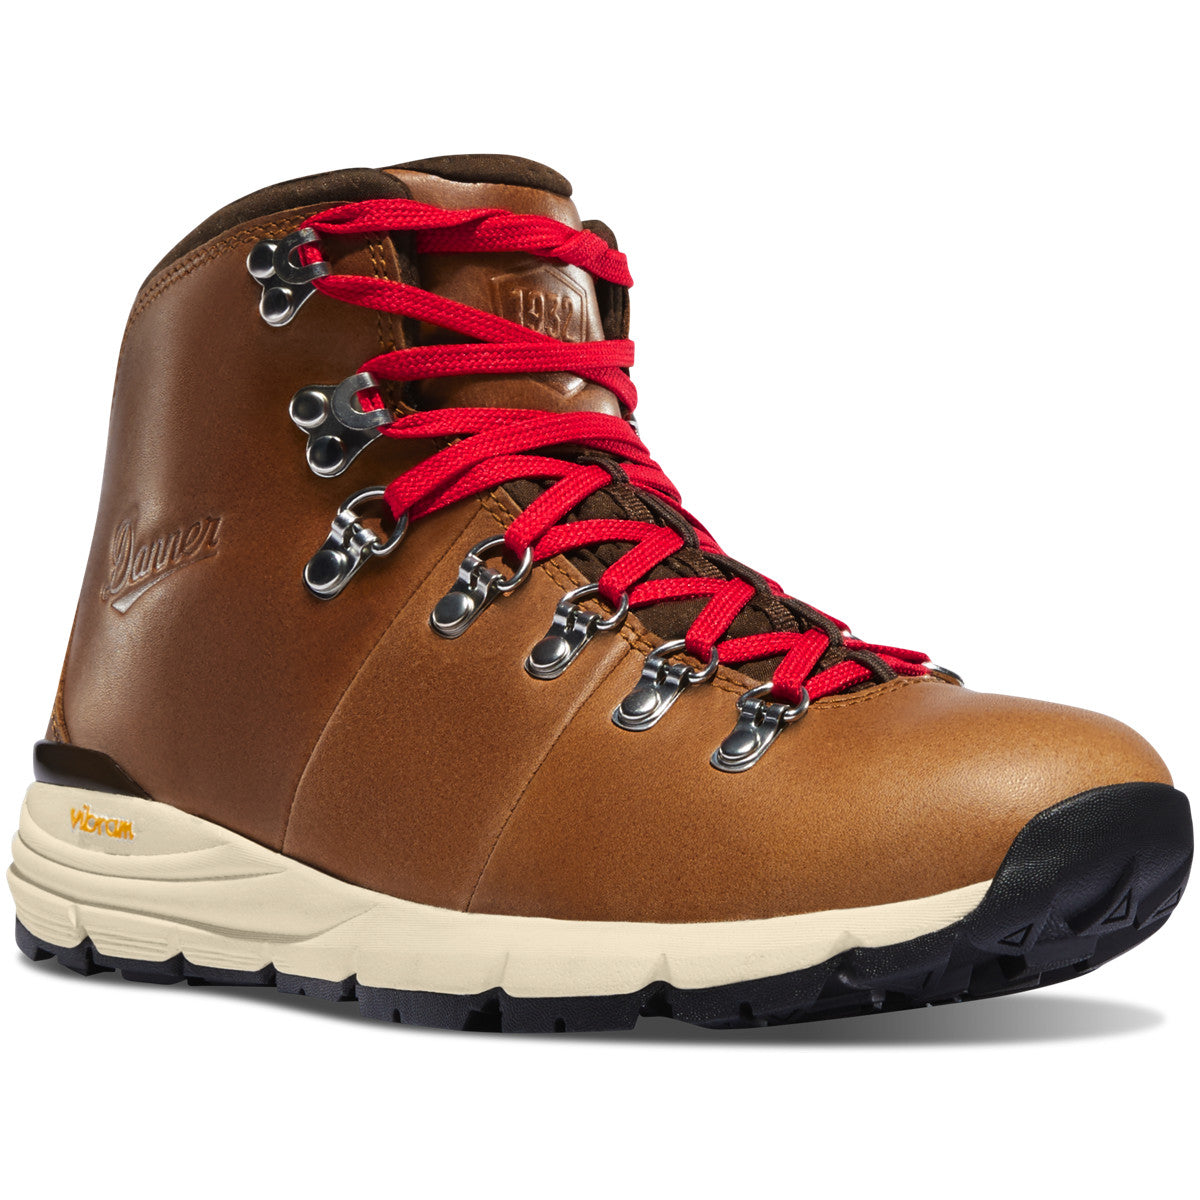 Mountain 600 Full Grain - Women's